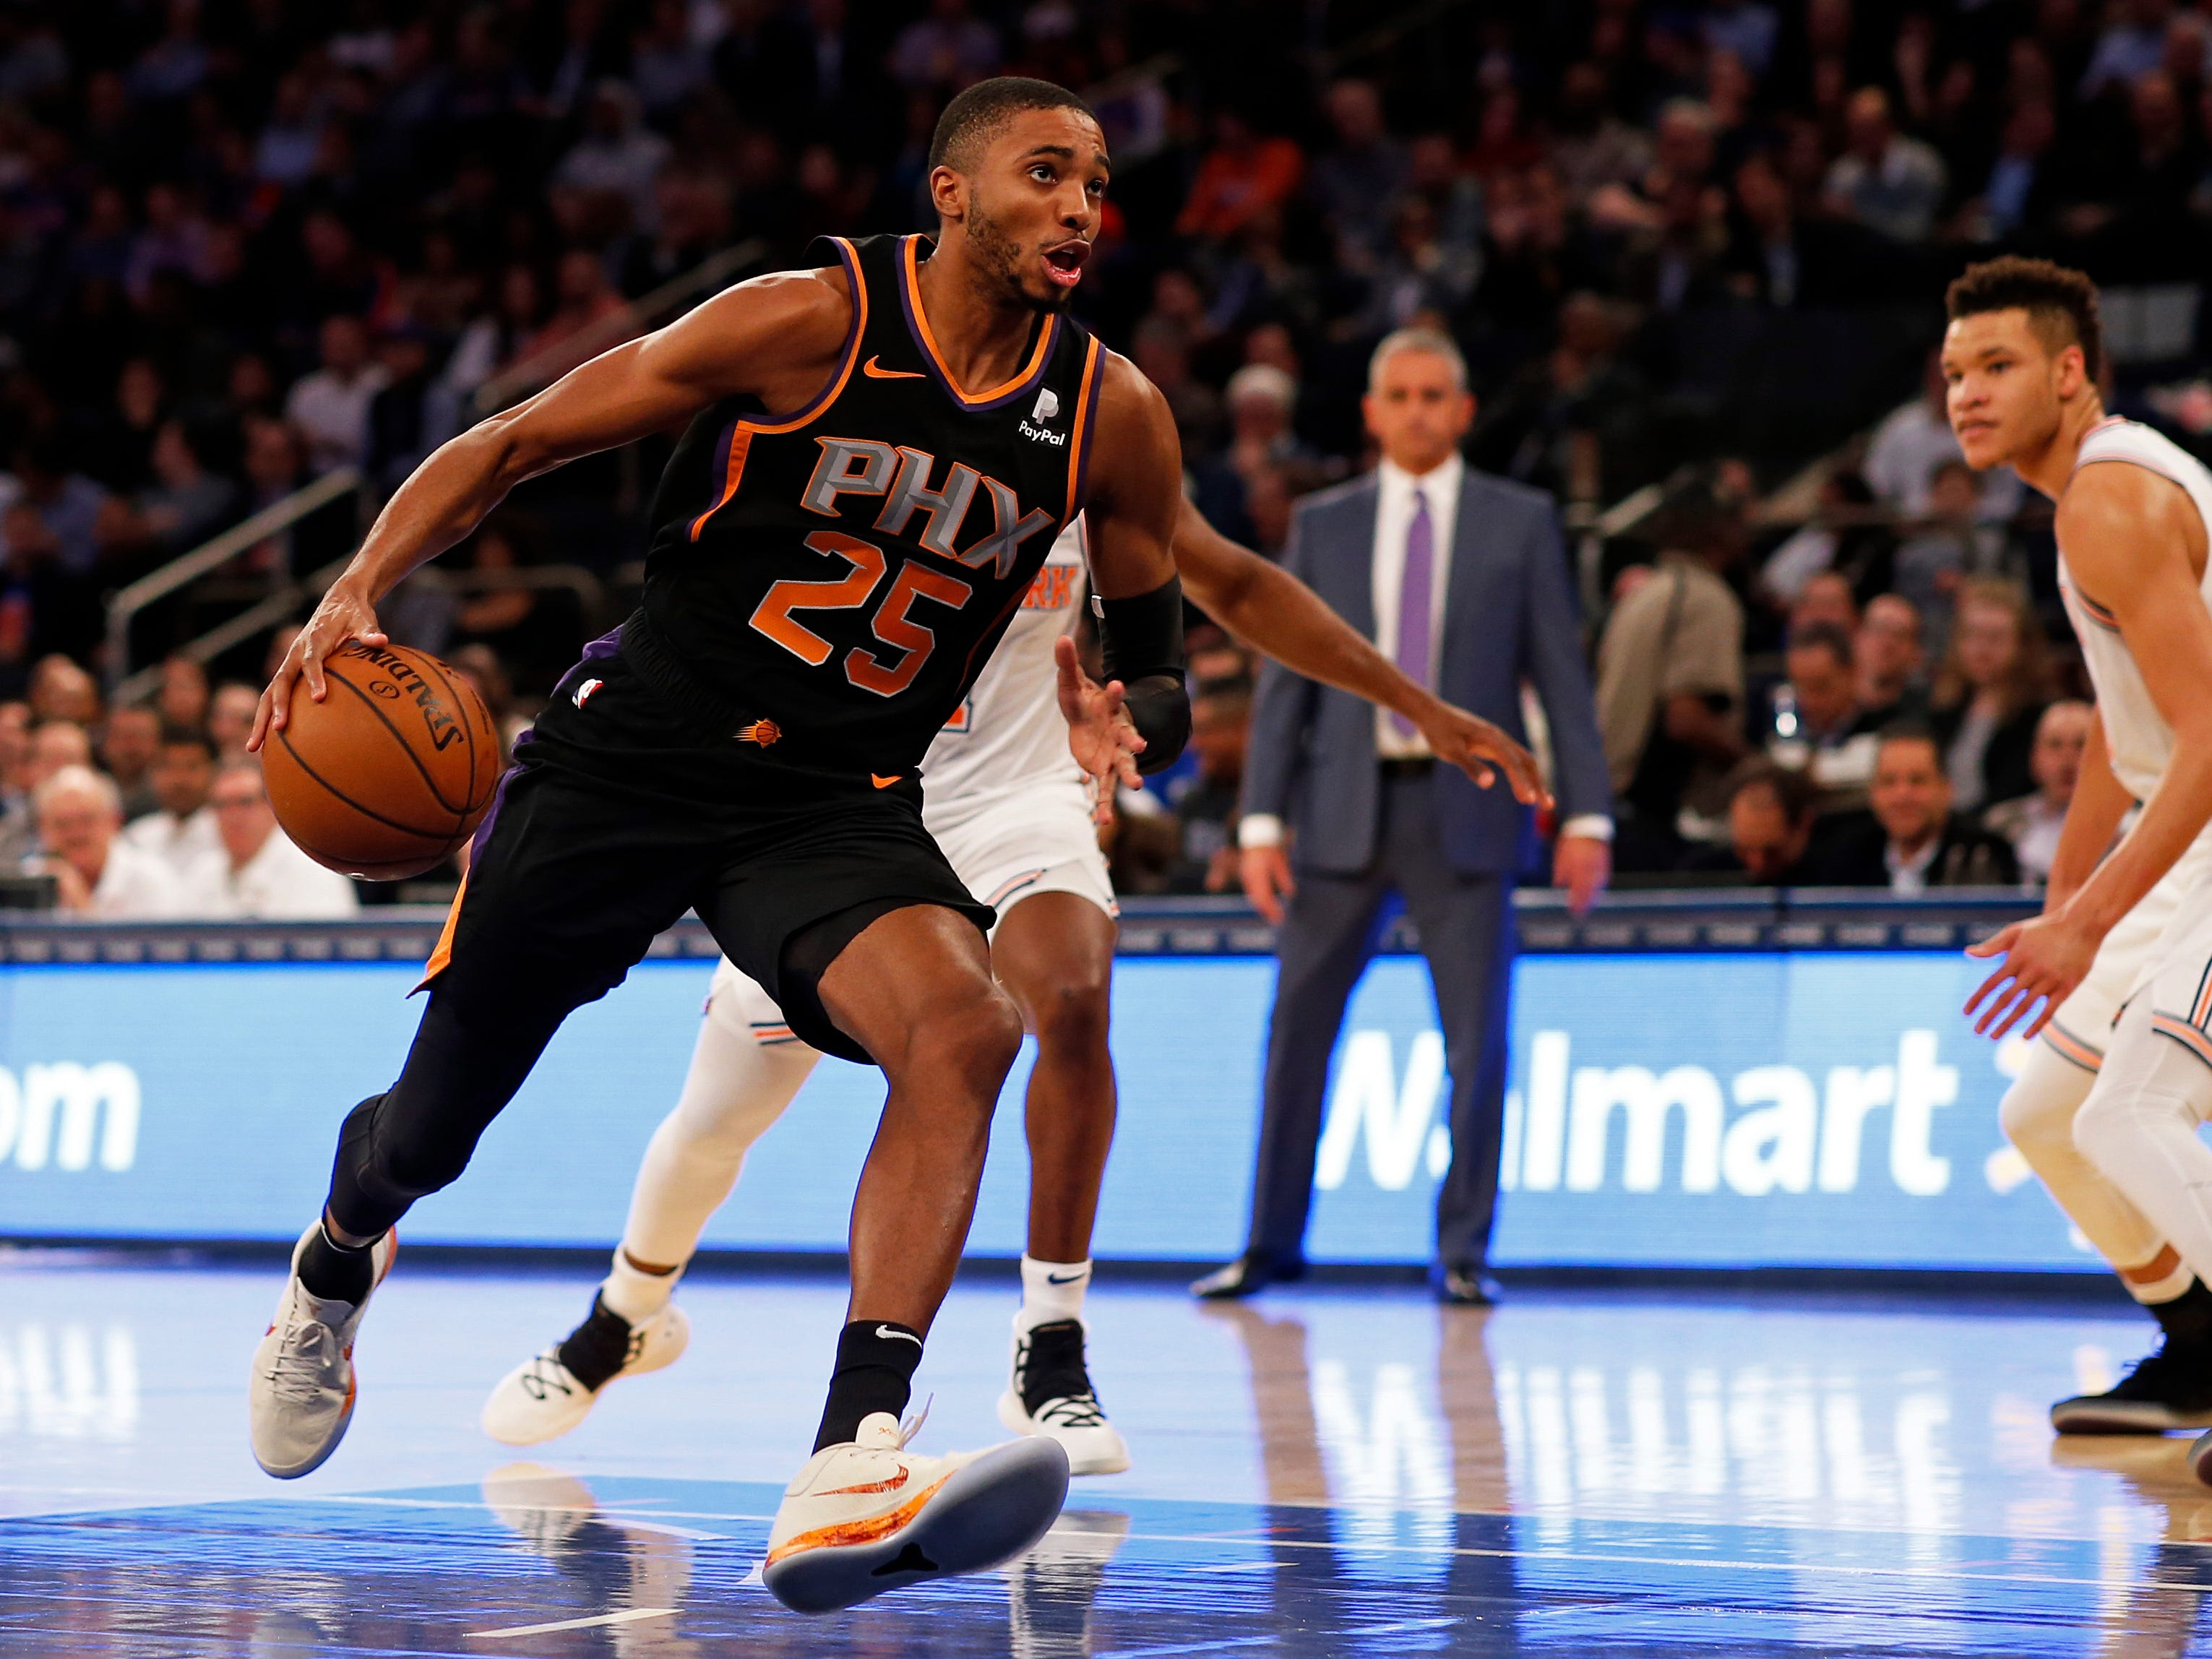 Dec 17, 2018; New York, NY, USA; Phoenix Suns forward Mikal Bridges (25) drives to the basket against the New York Knicks during the first half at Madison Square Garden. Mandatory Credit: Adam Hunger-USA TODAY Sports